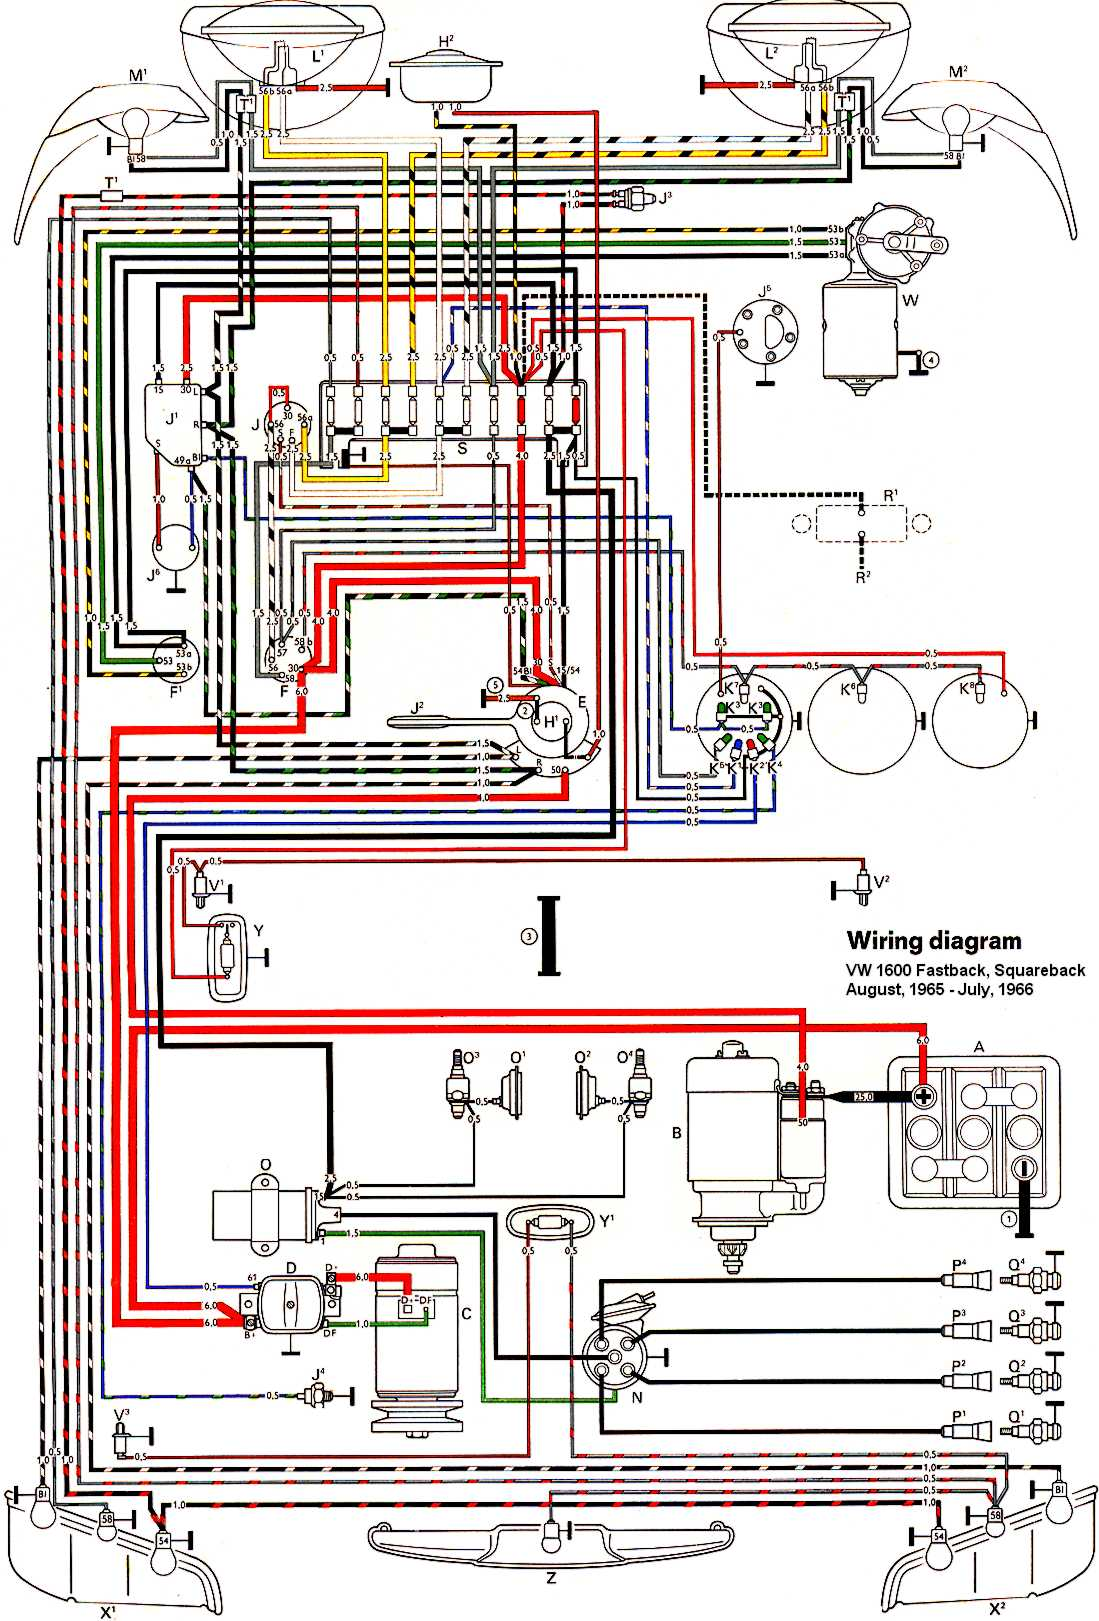 thesamba.com :: type 3 wiring diagrams 56 volkswagen bug wiring diagram